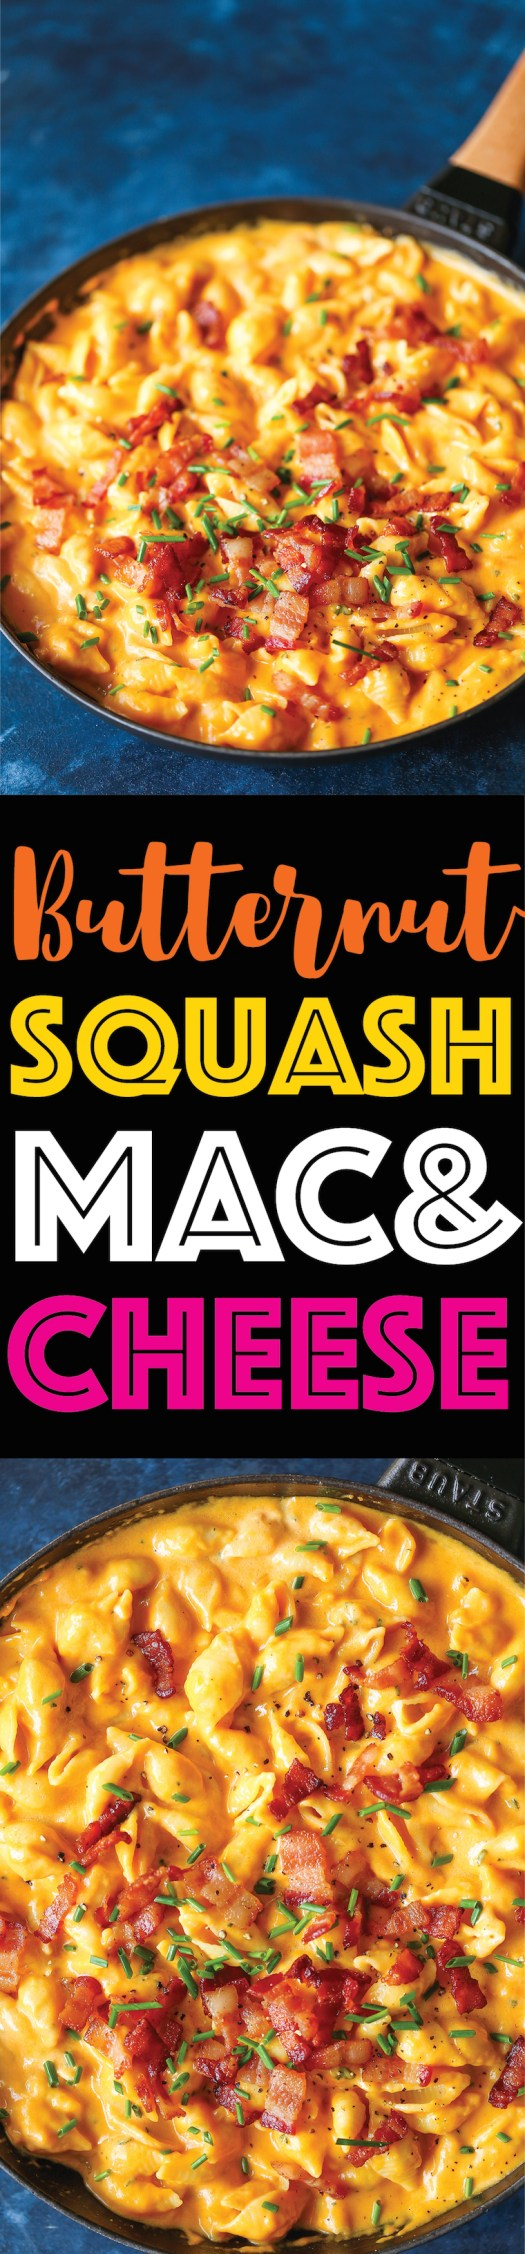 Butternut Squash Mac and Cheese -Mac and cheese at it's finest! So creamy, so rich + so amazing yet it's so much healthier than traditional mac and cheese!